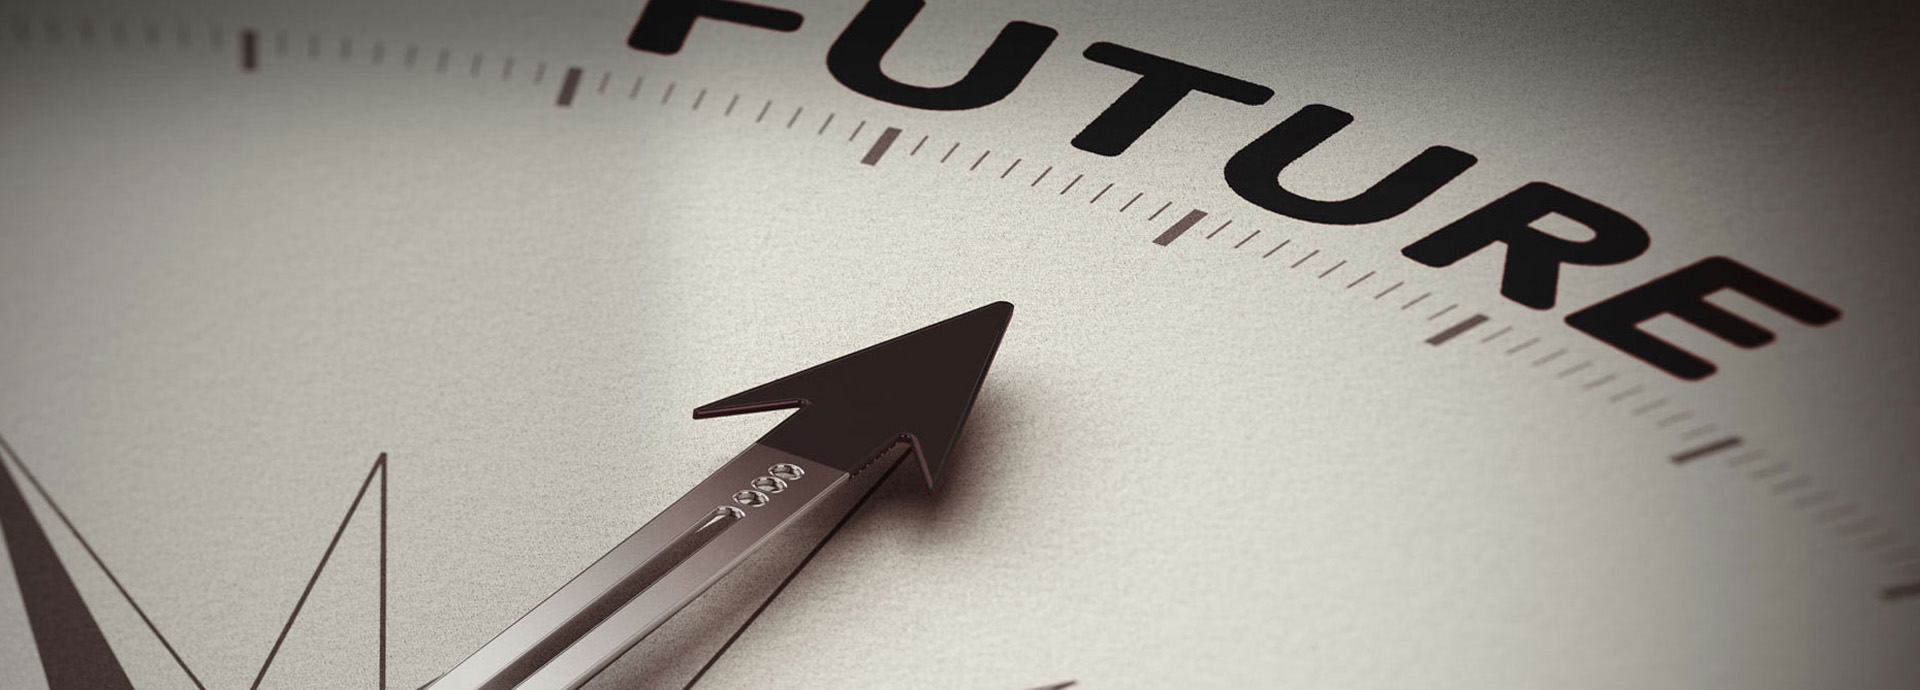 Compass pointing towards the word Future